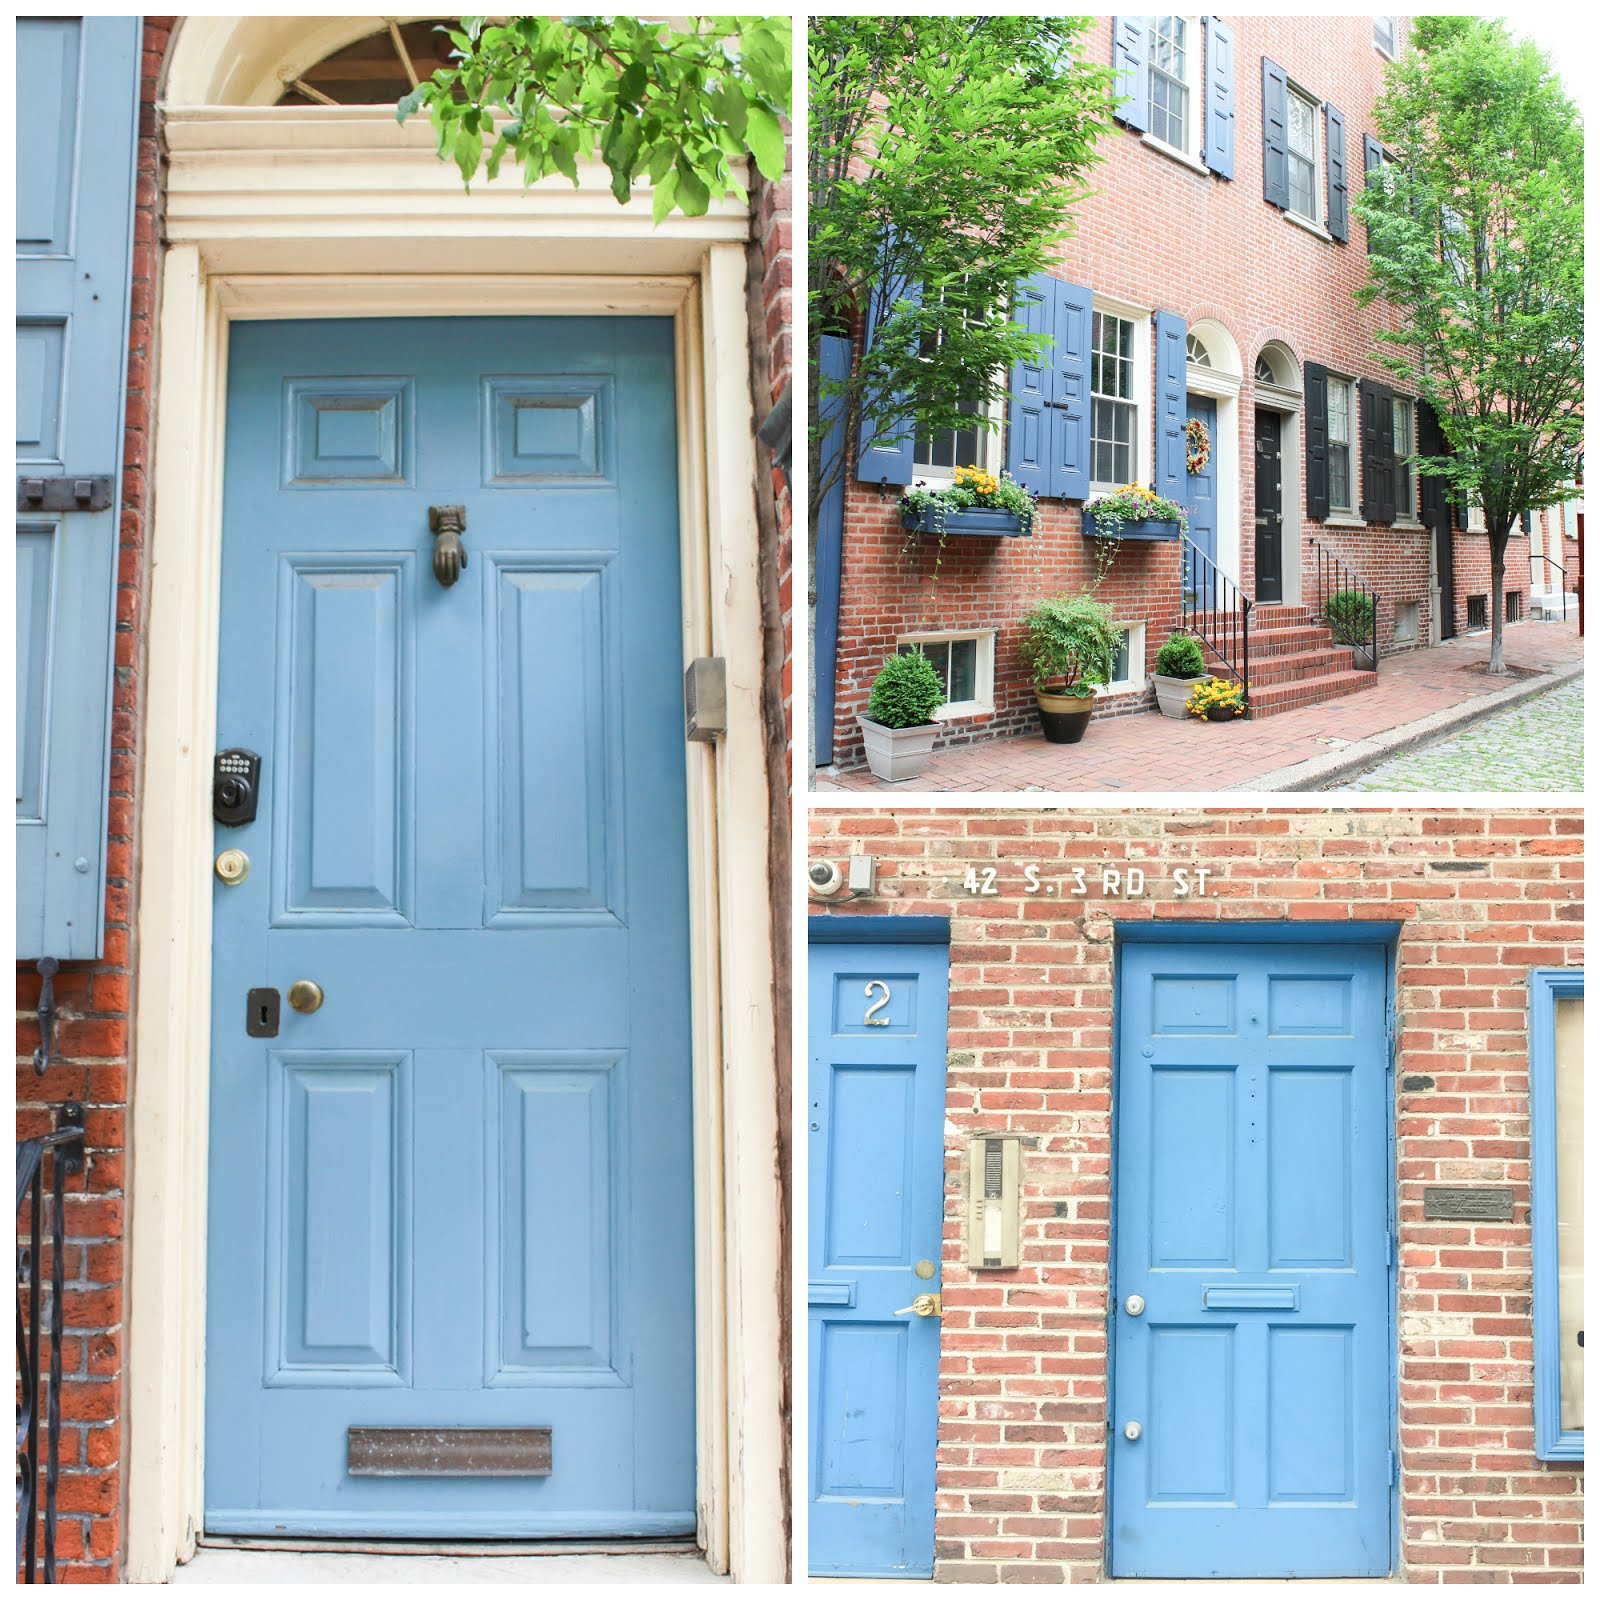 ... doors and exteriors from last weekend wandering around Philly. Whether you\u0027re giving your home a spring makeover or just imaging your someday house ...  sc 1 st  My Darling Passport & DOORS OF PHILLY | My Darling Passport